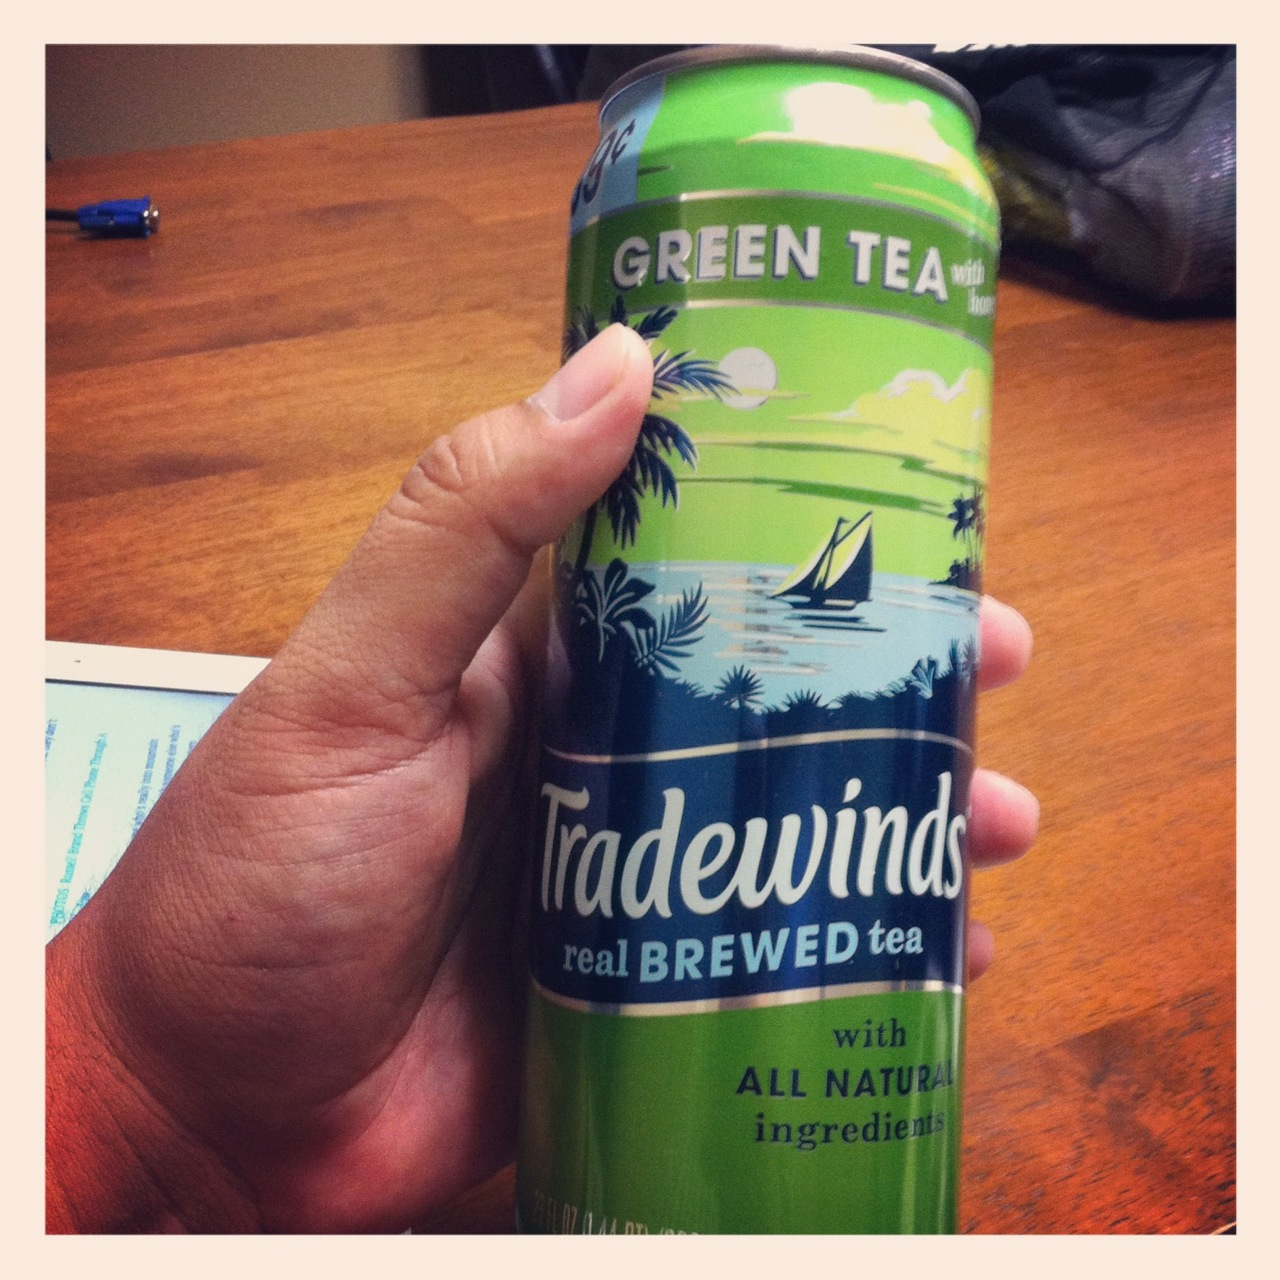 One of the perks of working with my friend Eric at work is that we go out of our way every day to introduce each other to bottled/canned tea. Tradewinds is one I've seen a few times at the store but hadn't picked it up because it reminded me of a liquor store I used to frequent in Detroit on Livernoise. Much to my surprise, the Green Tea is pretty good.